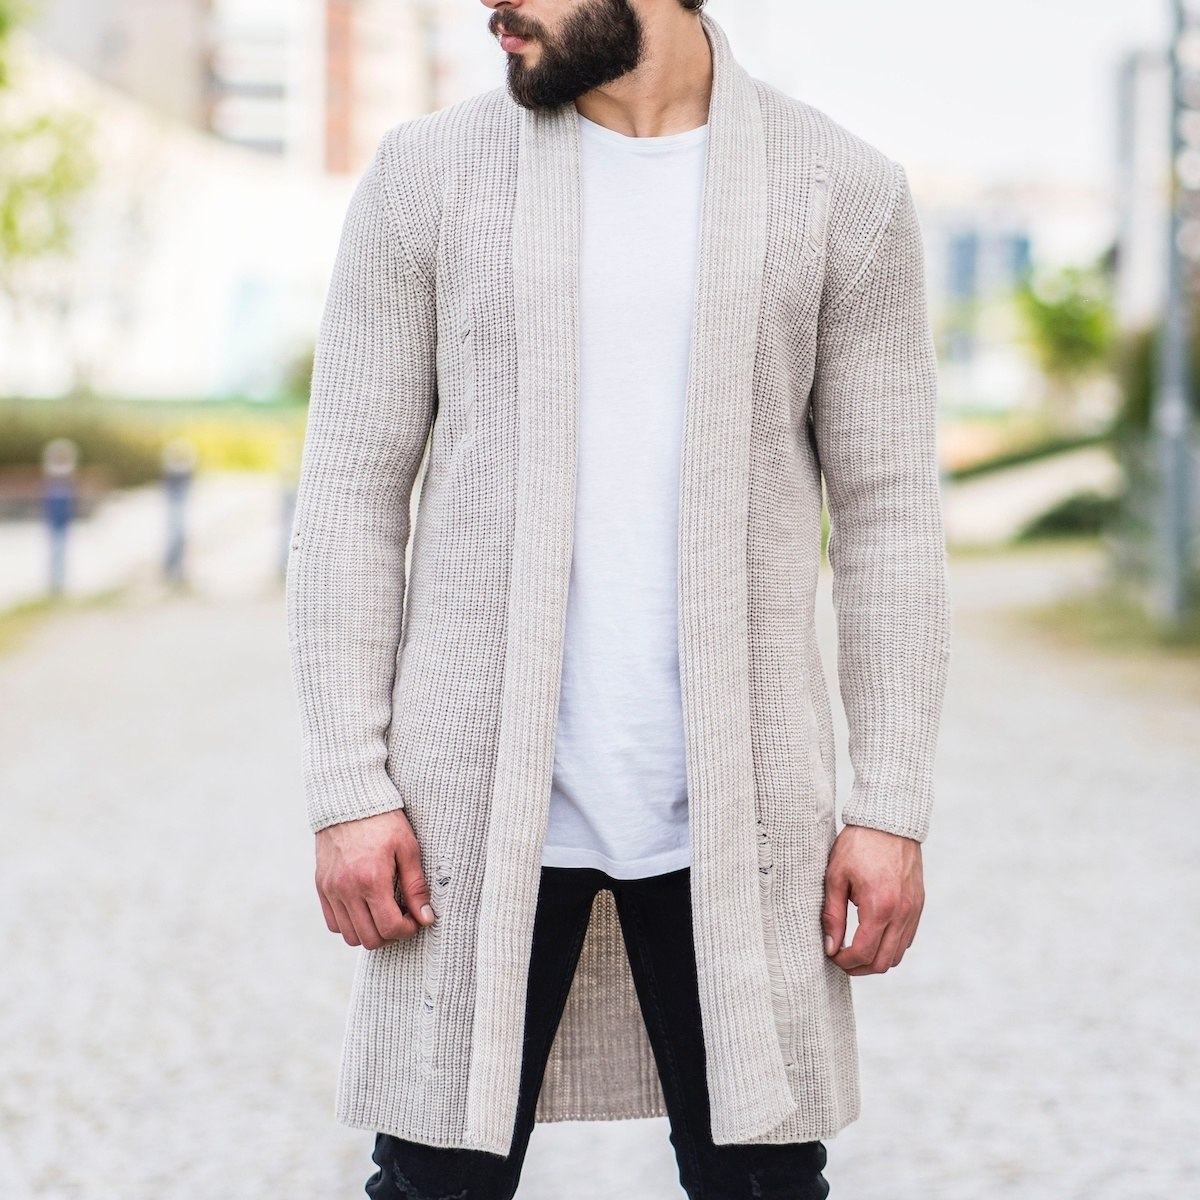 Men's Knitted-Ragged Cardigan In Beige